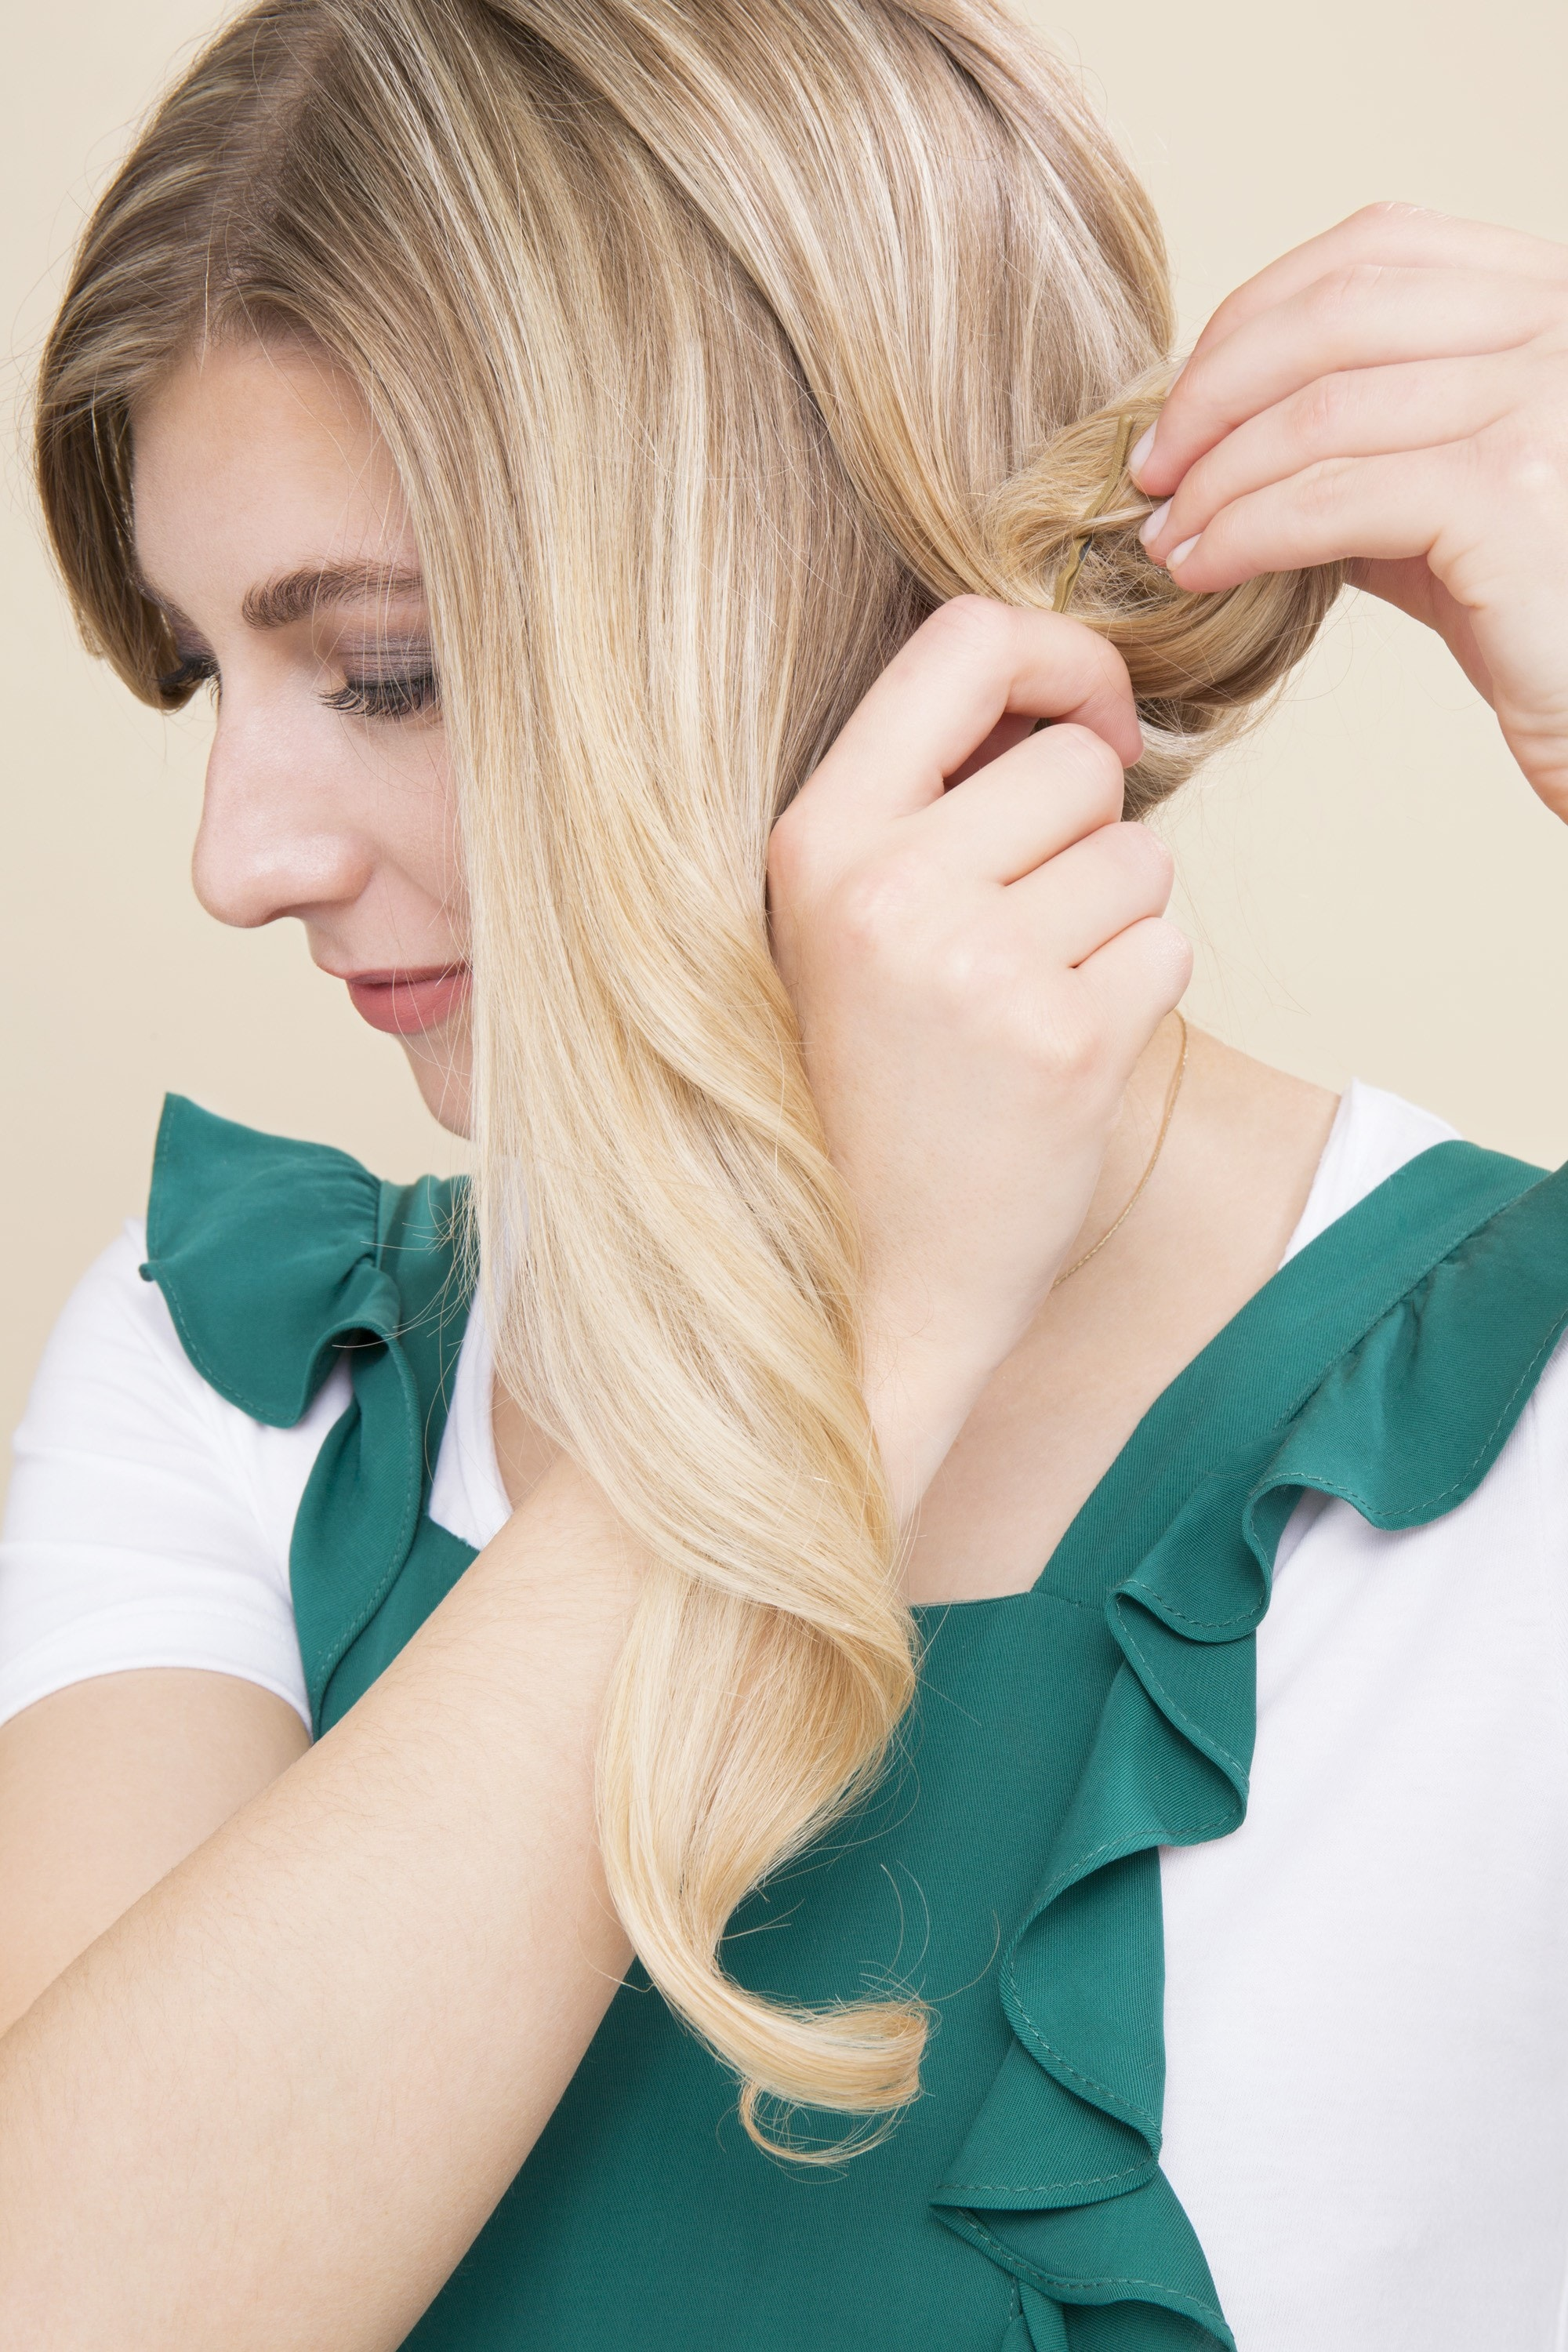 Pin curl tutorial: Blonde woman rolling her hair into a pin curl